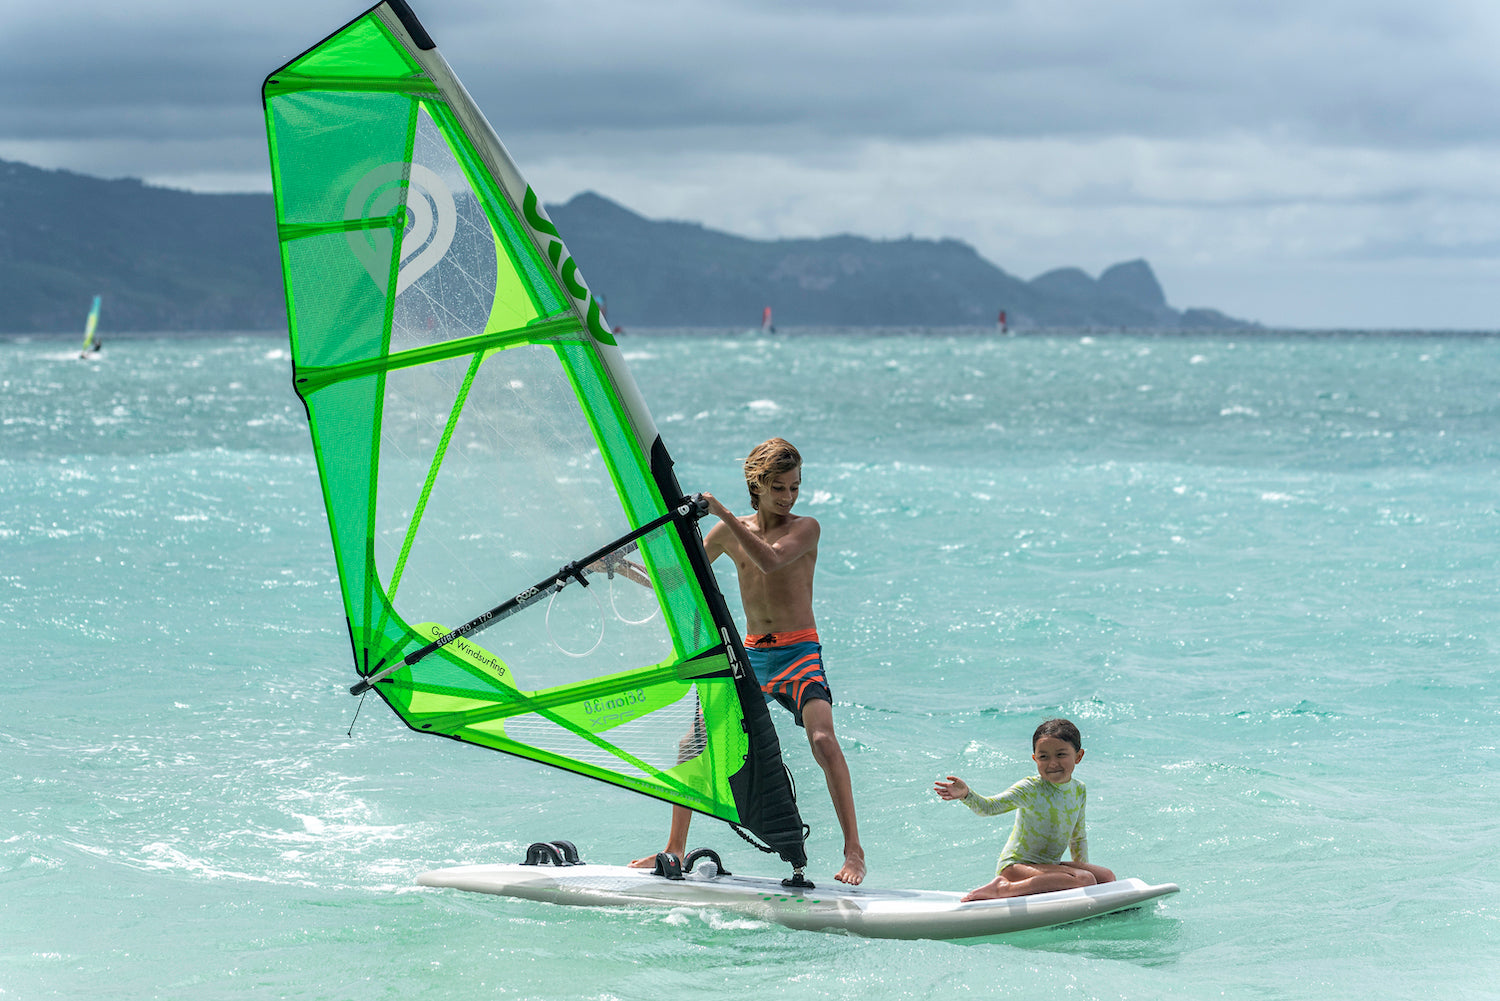 Family Fun on the Goya Surf Windsurf Board